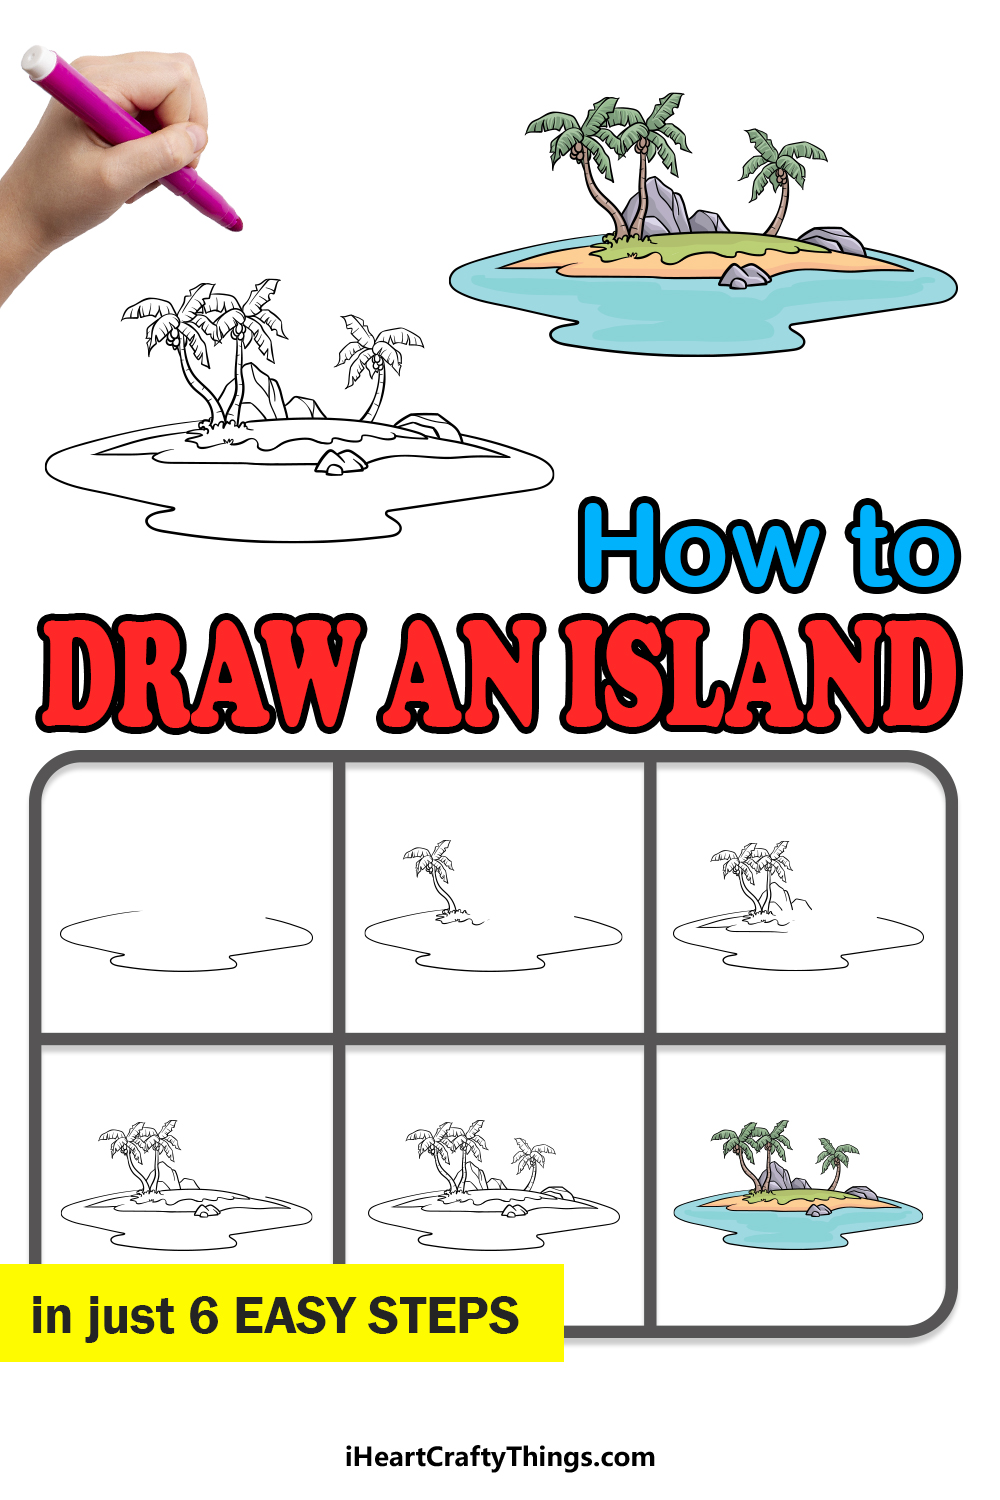 how to draw an island in 6 easy steps